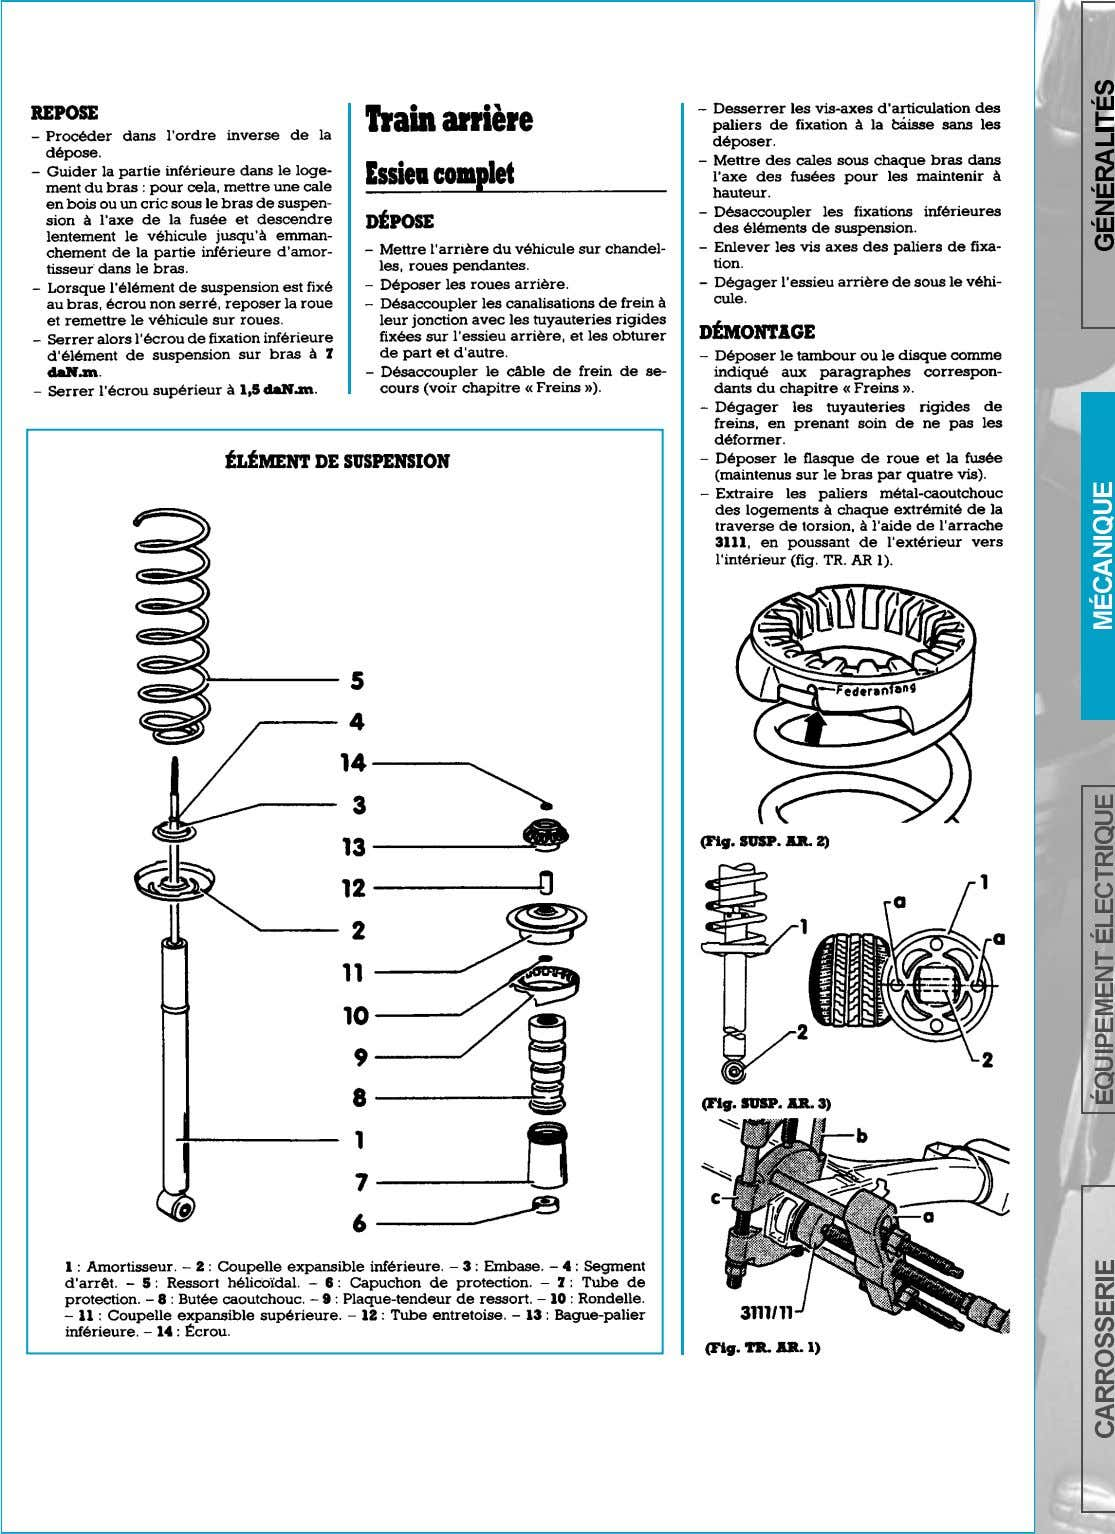 SUSPENSION-TRAIN ARRIERE   page 153